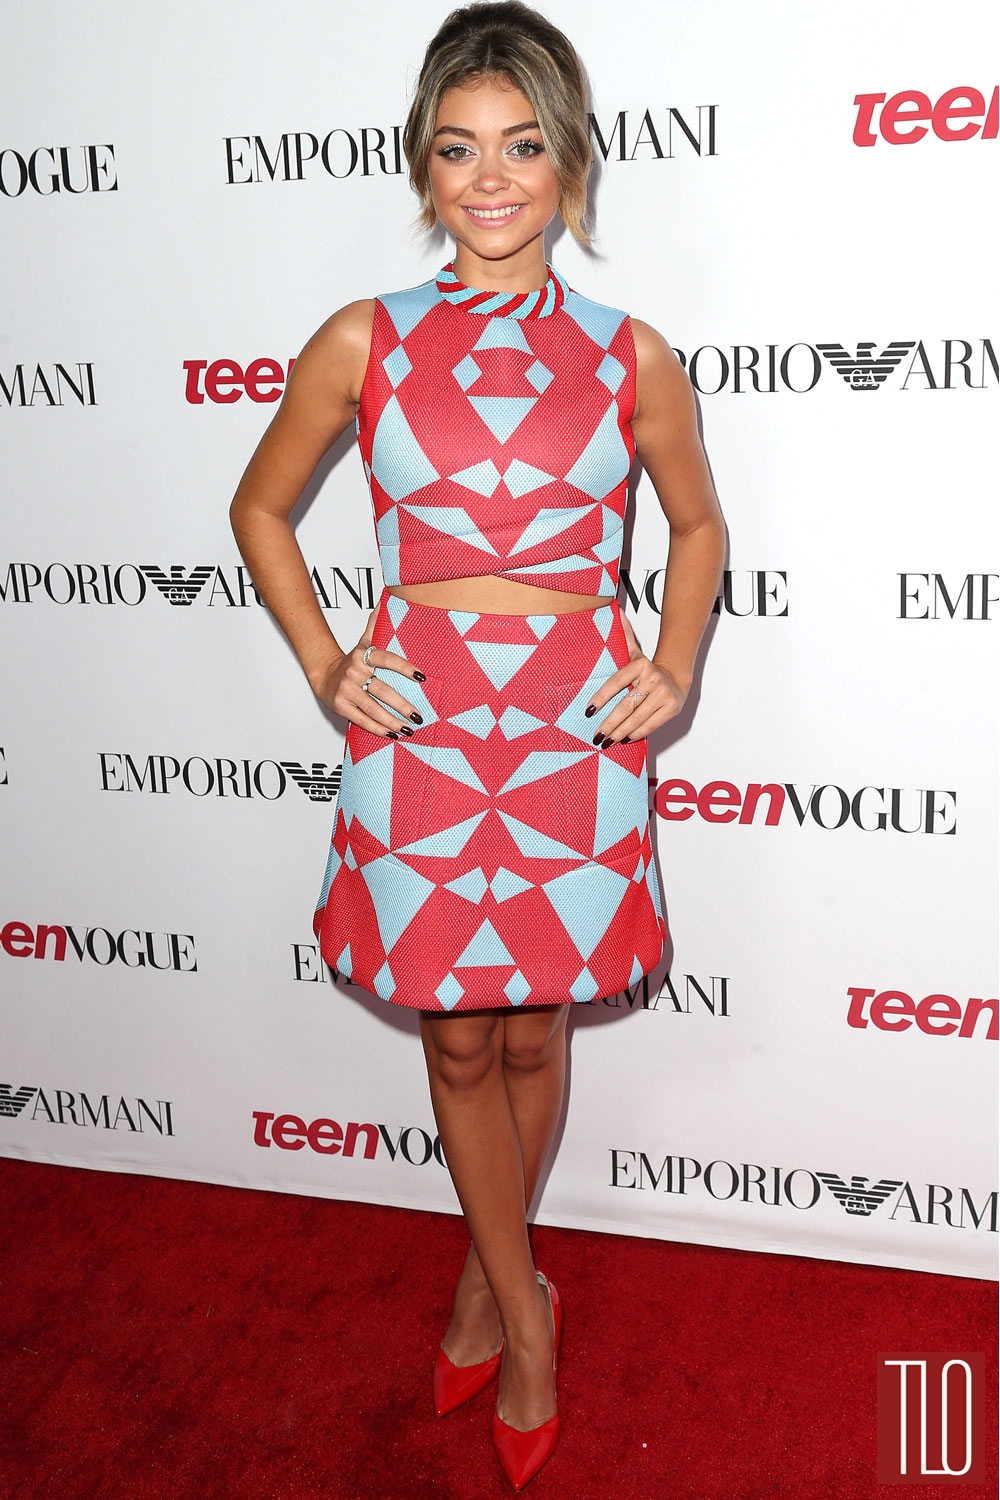 Teen-Vogue-Young-Hollywood-Party-2014-Red-Carpet-Rundown-Fashion-Tom-Lorenzo-Site-TLO (1)